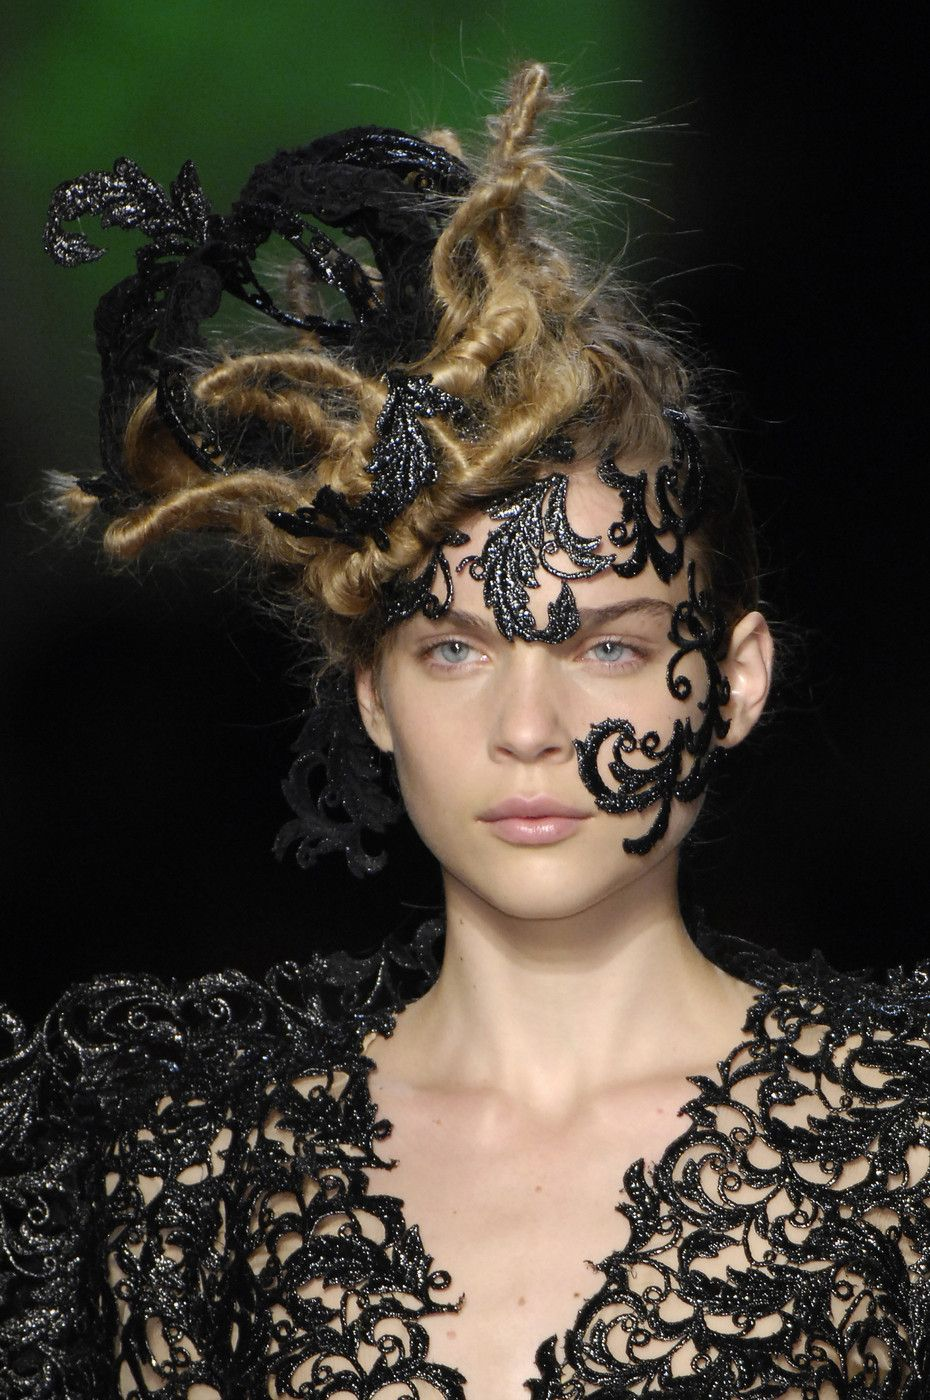 Jean Paul Gaultier at Couture Fall 2007